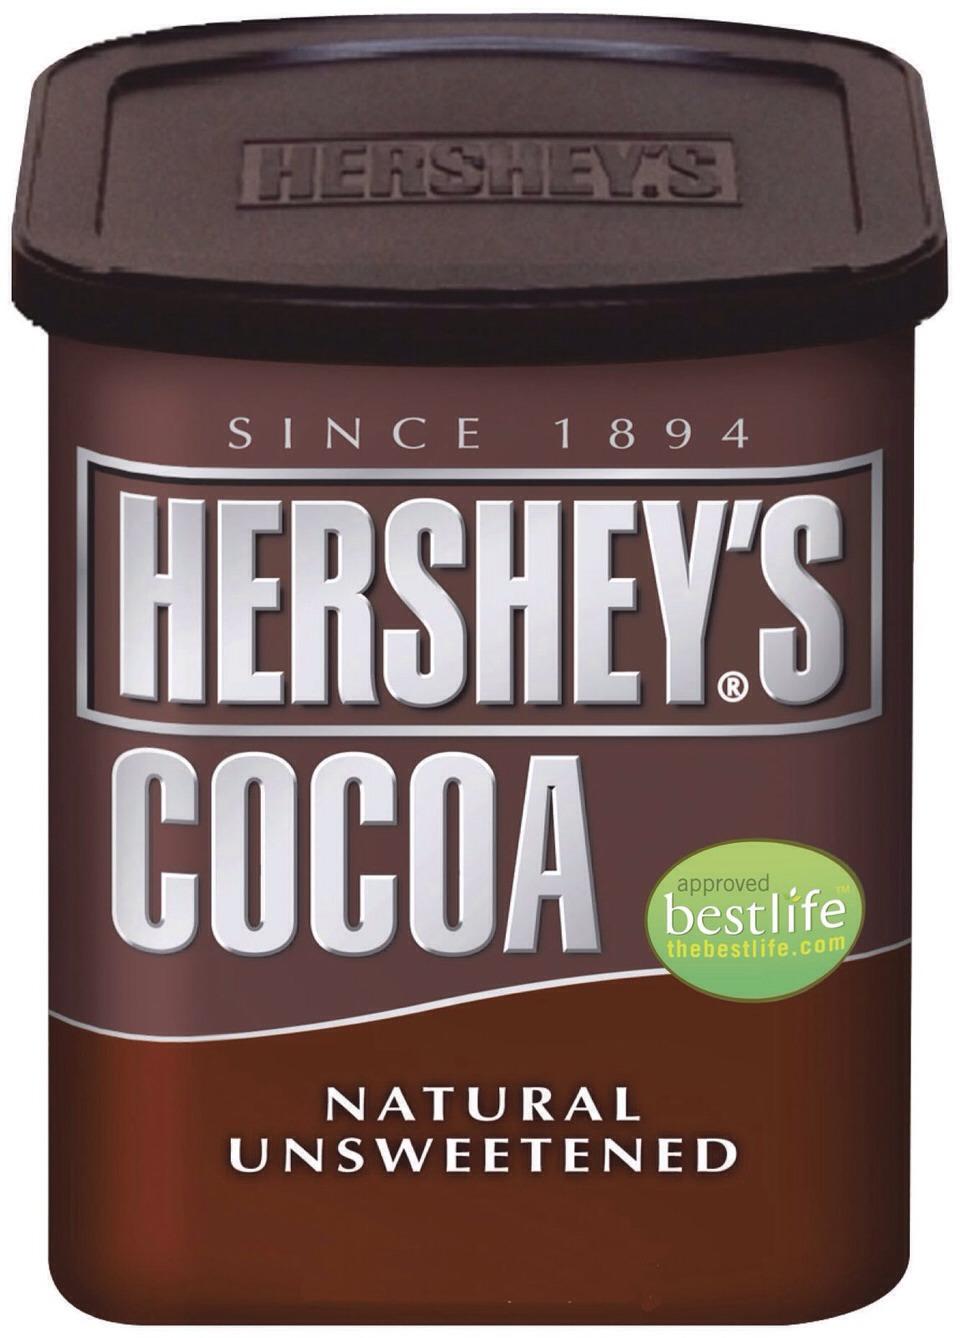 You have to use Hershey's unsweetened coca not the kind that is sweetened or else you will have a real mess!